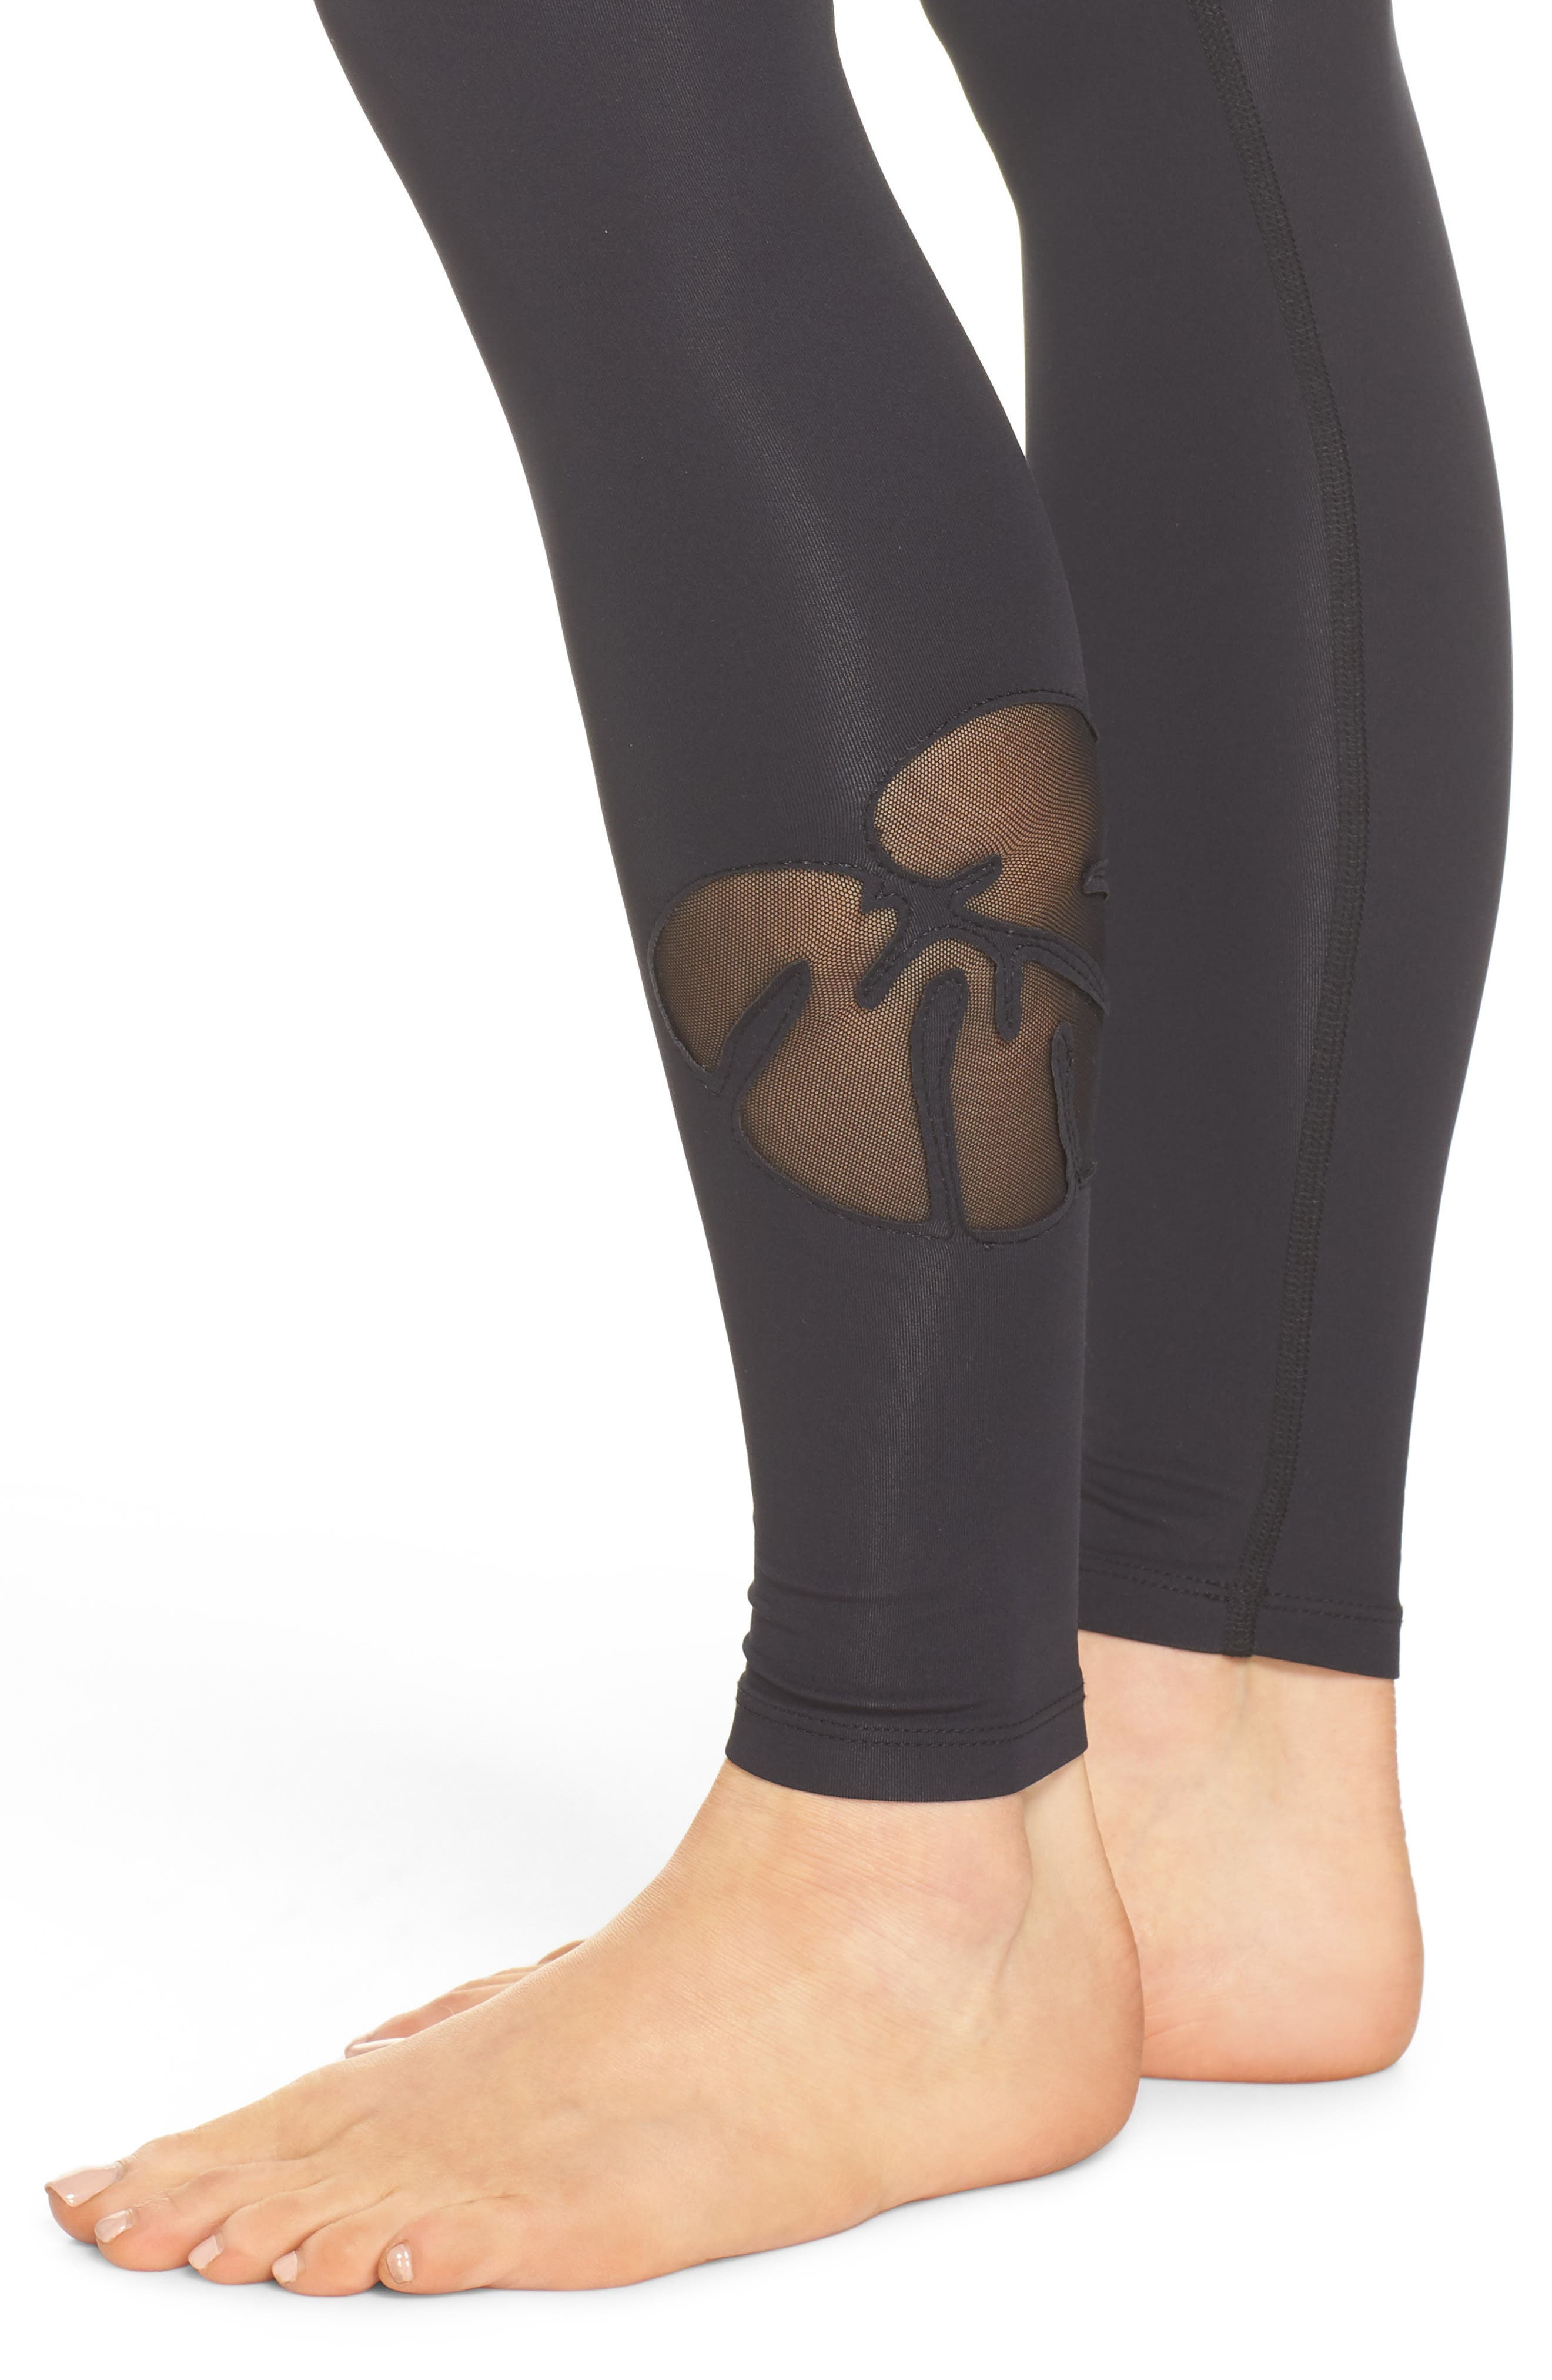 Take Leaf High Waist Leggings,                             Alternate thumbnail 6, color,                             Black